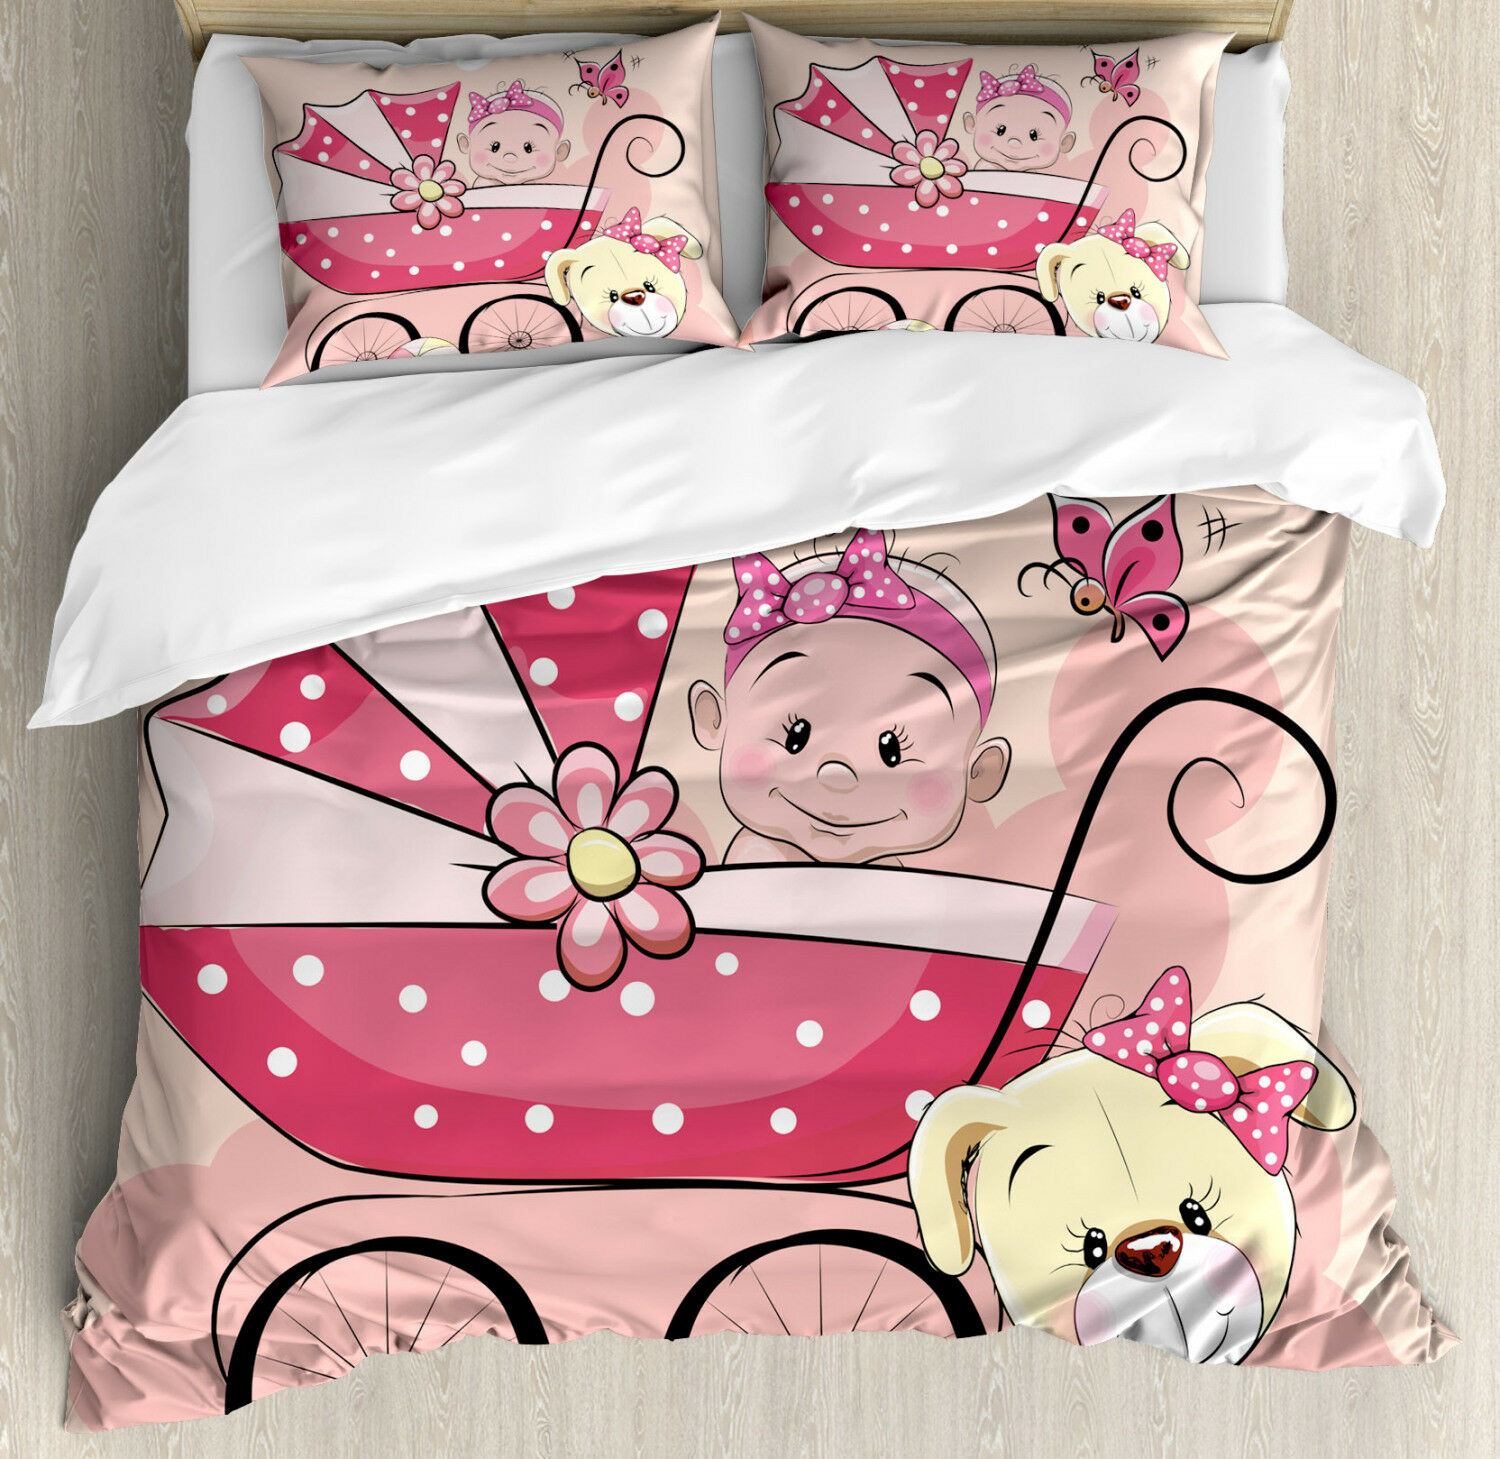 Gender Reveal Duvet Cover Set with Pillow Shams Puppy Carriage Print